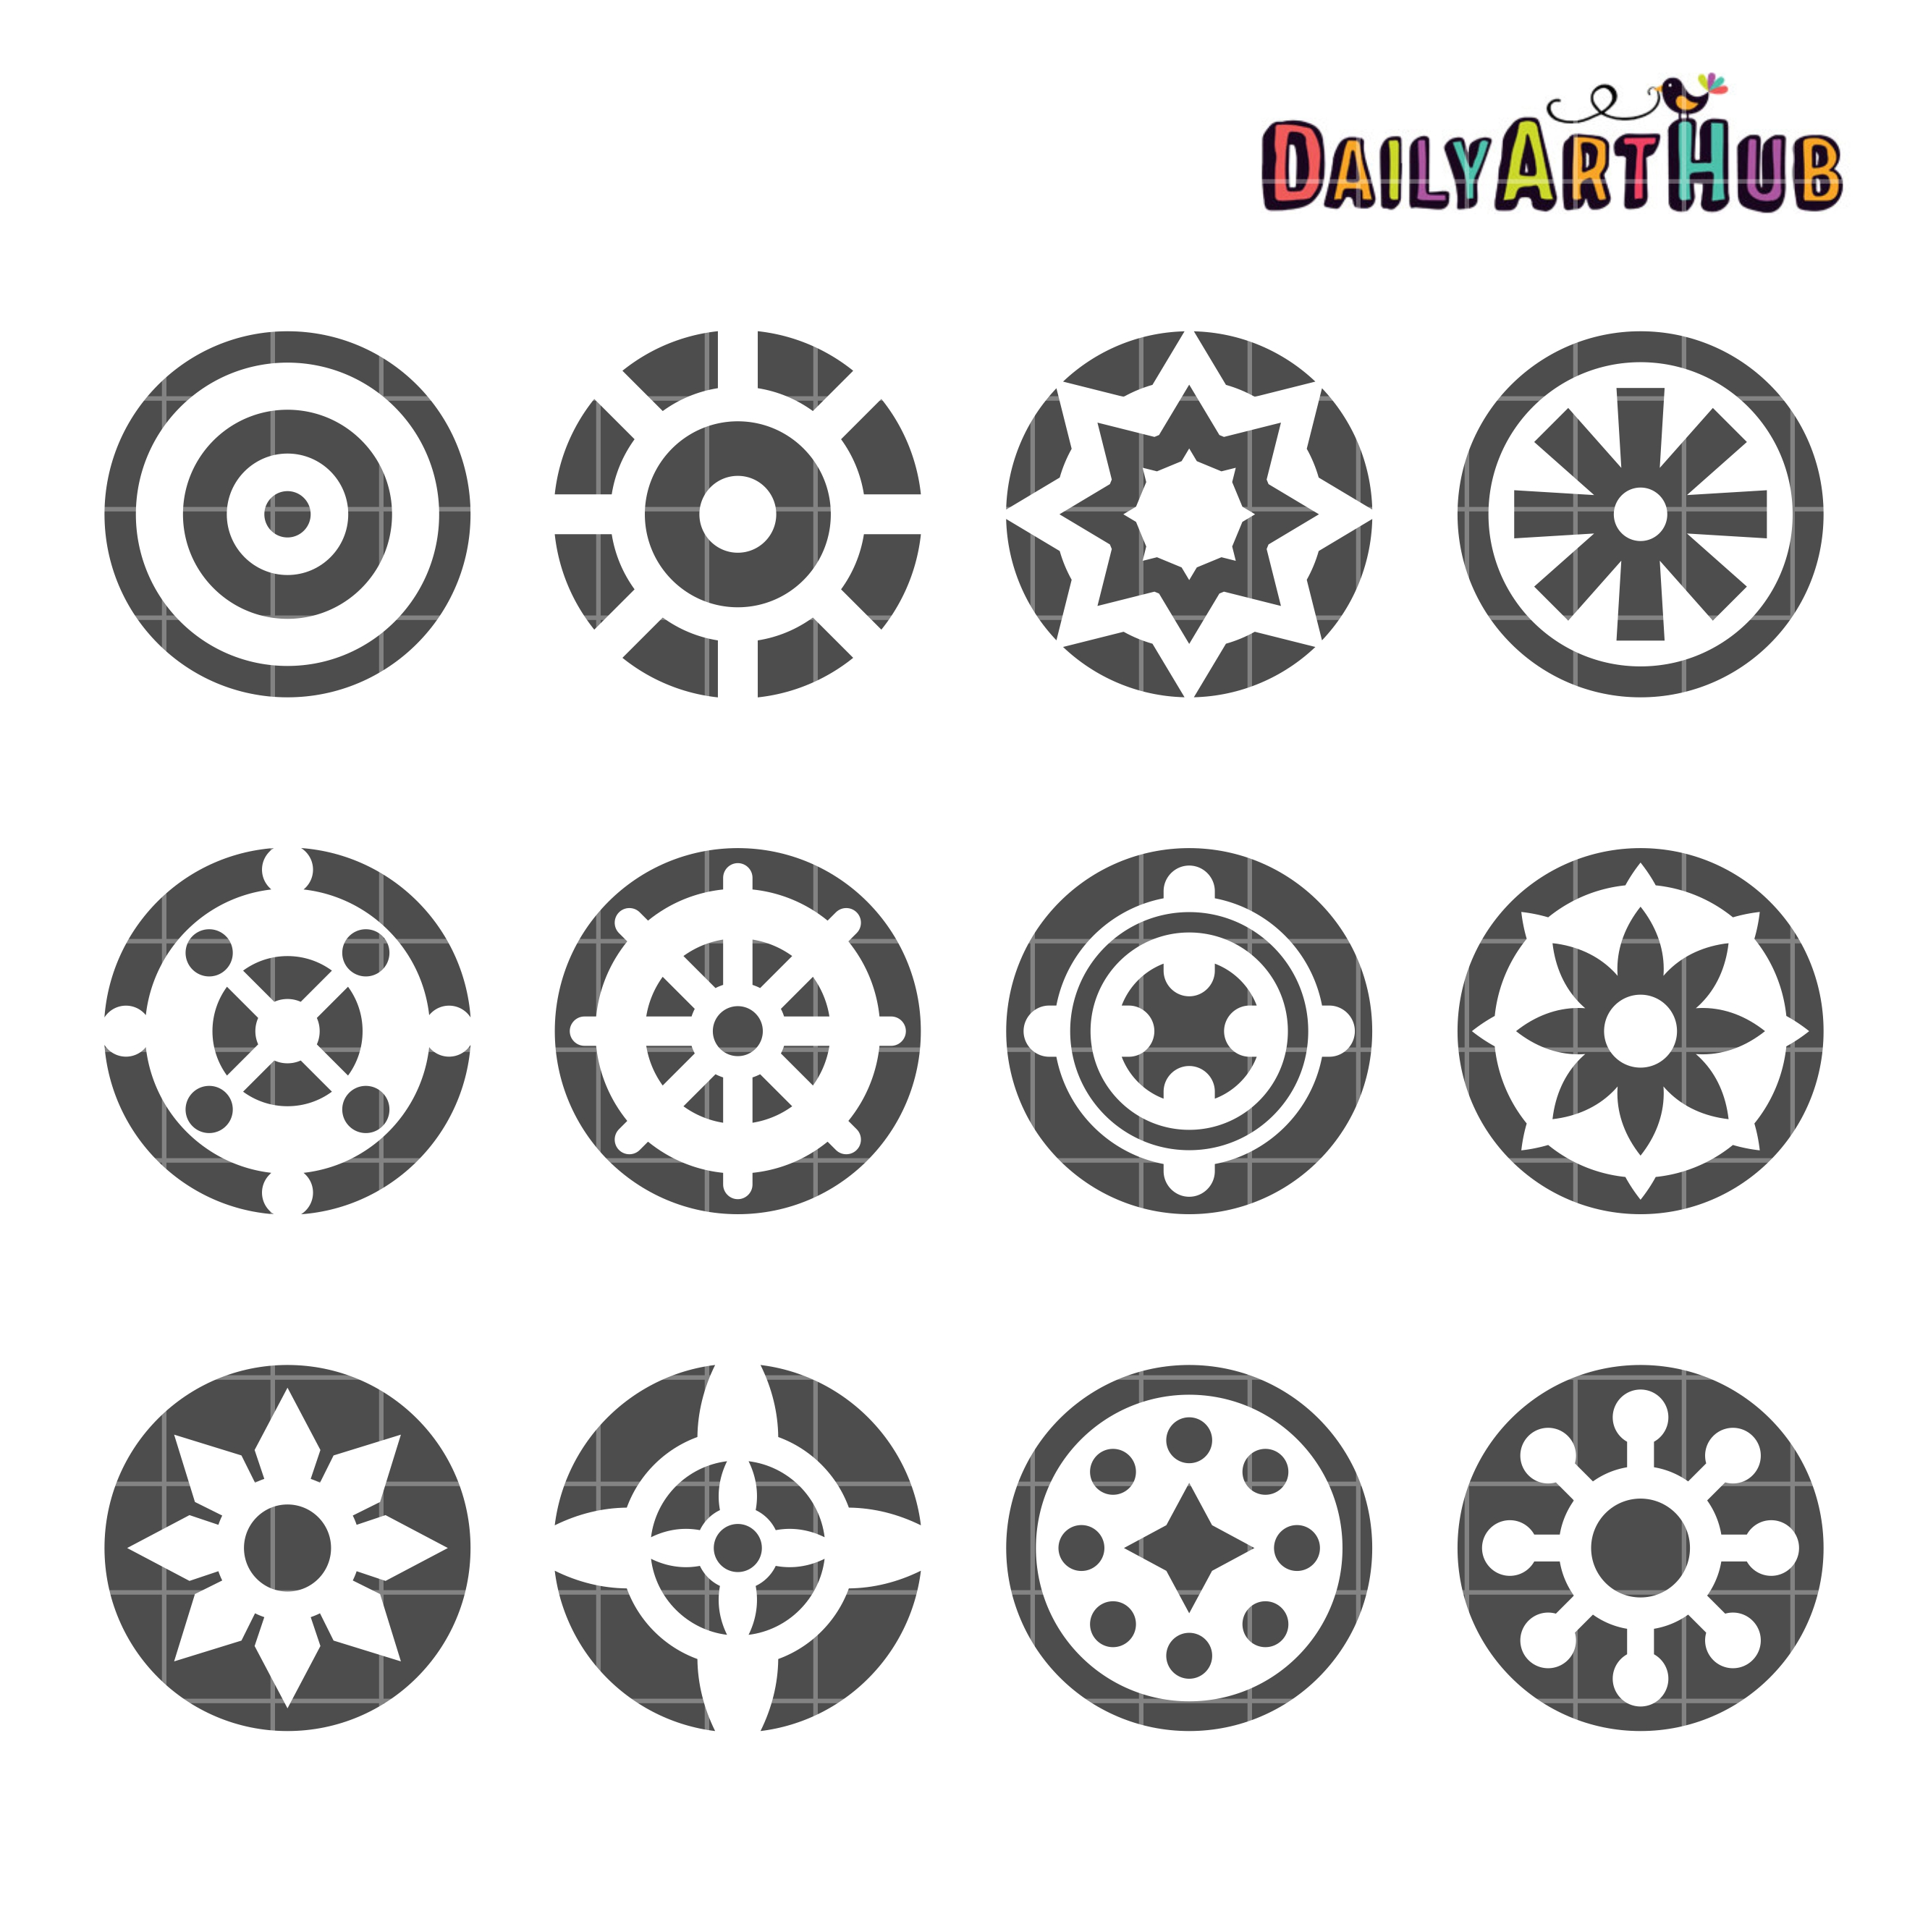 Decorative Circle Shapes Clip Art Set – Daily Art Hub ...